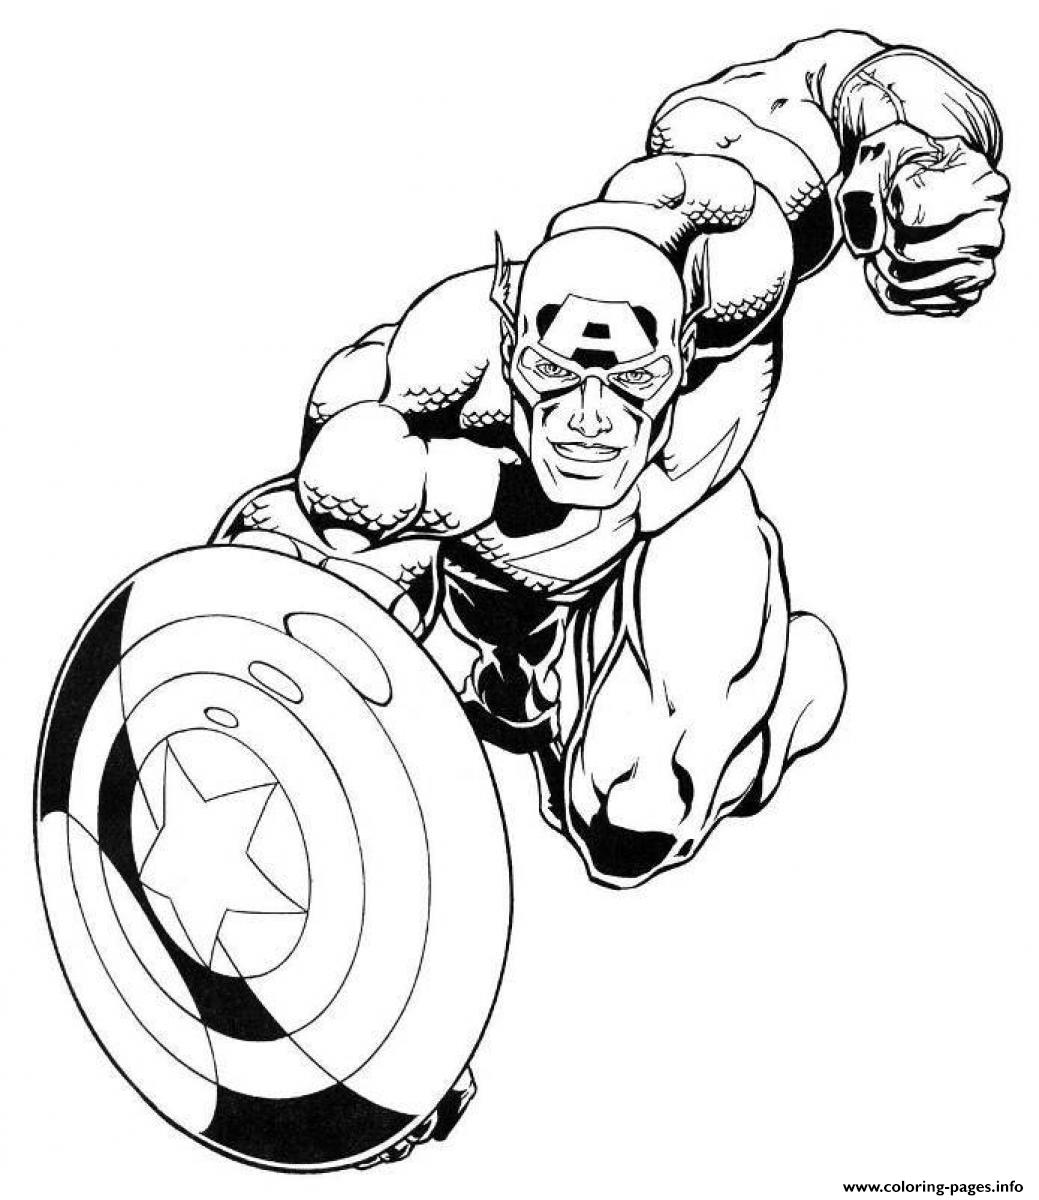 Superhero Captain America 21 coloring pages